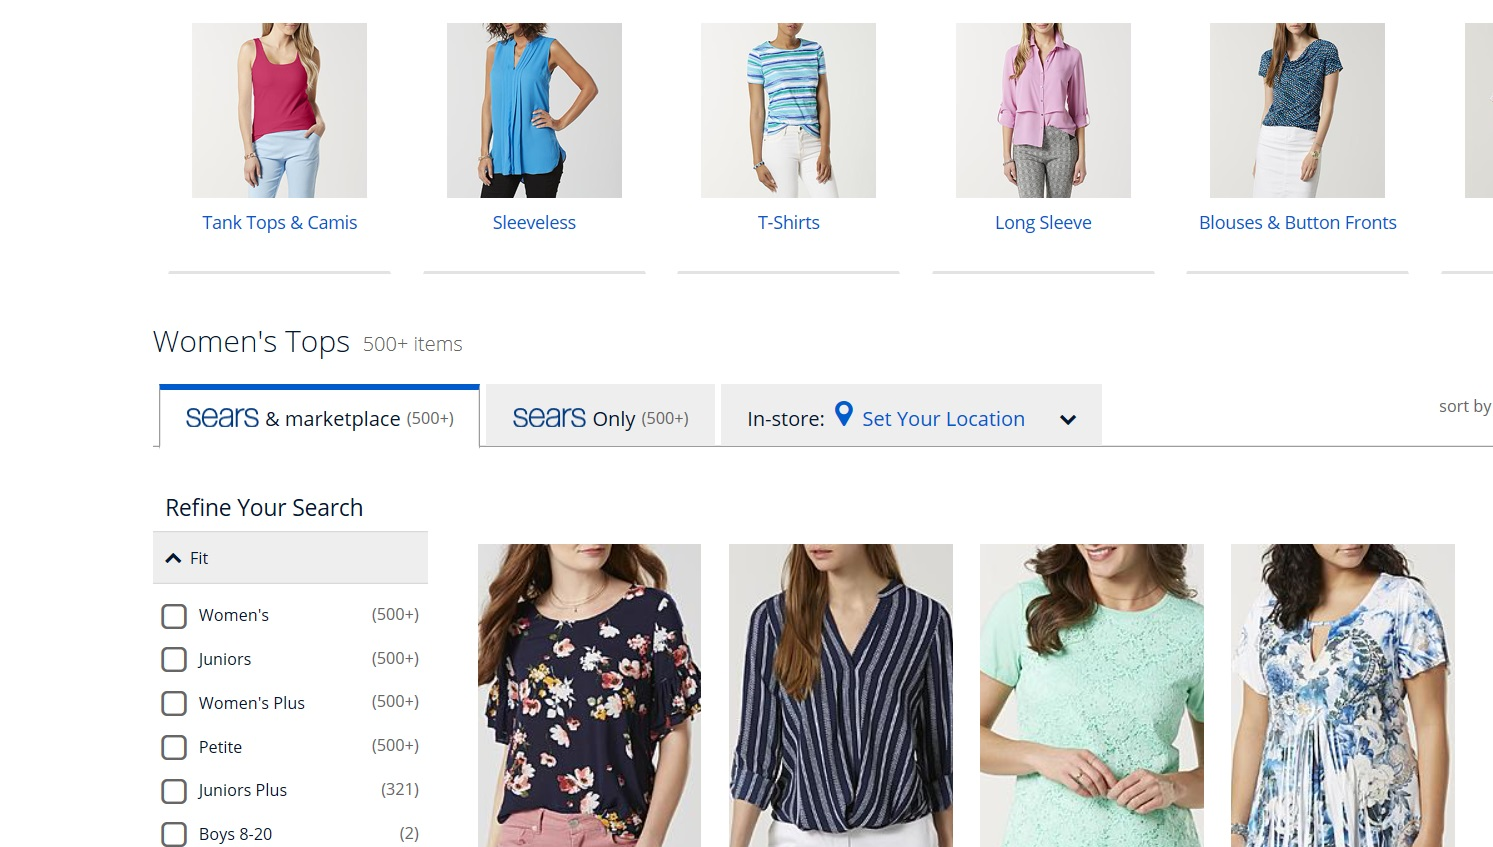 Search results for women s tops.